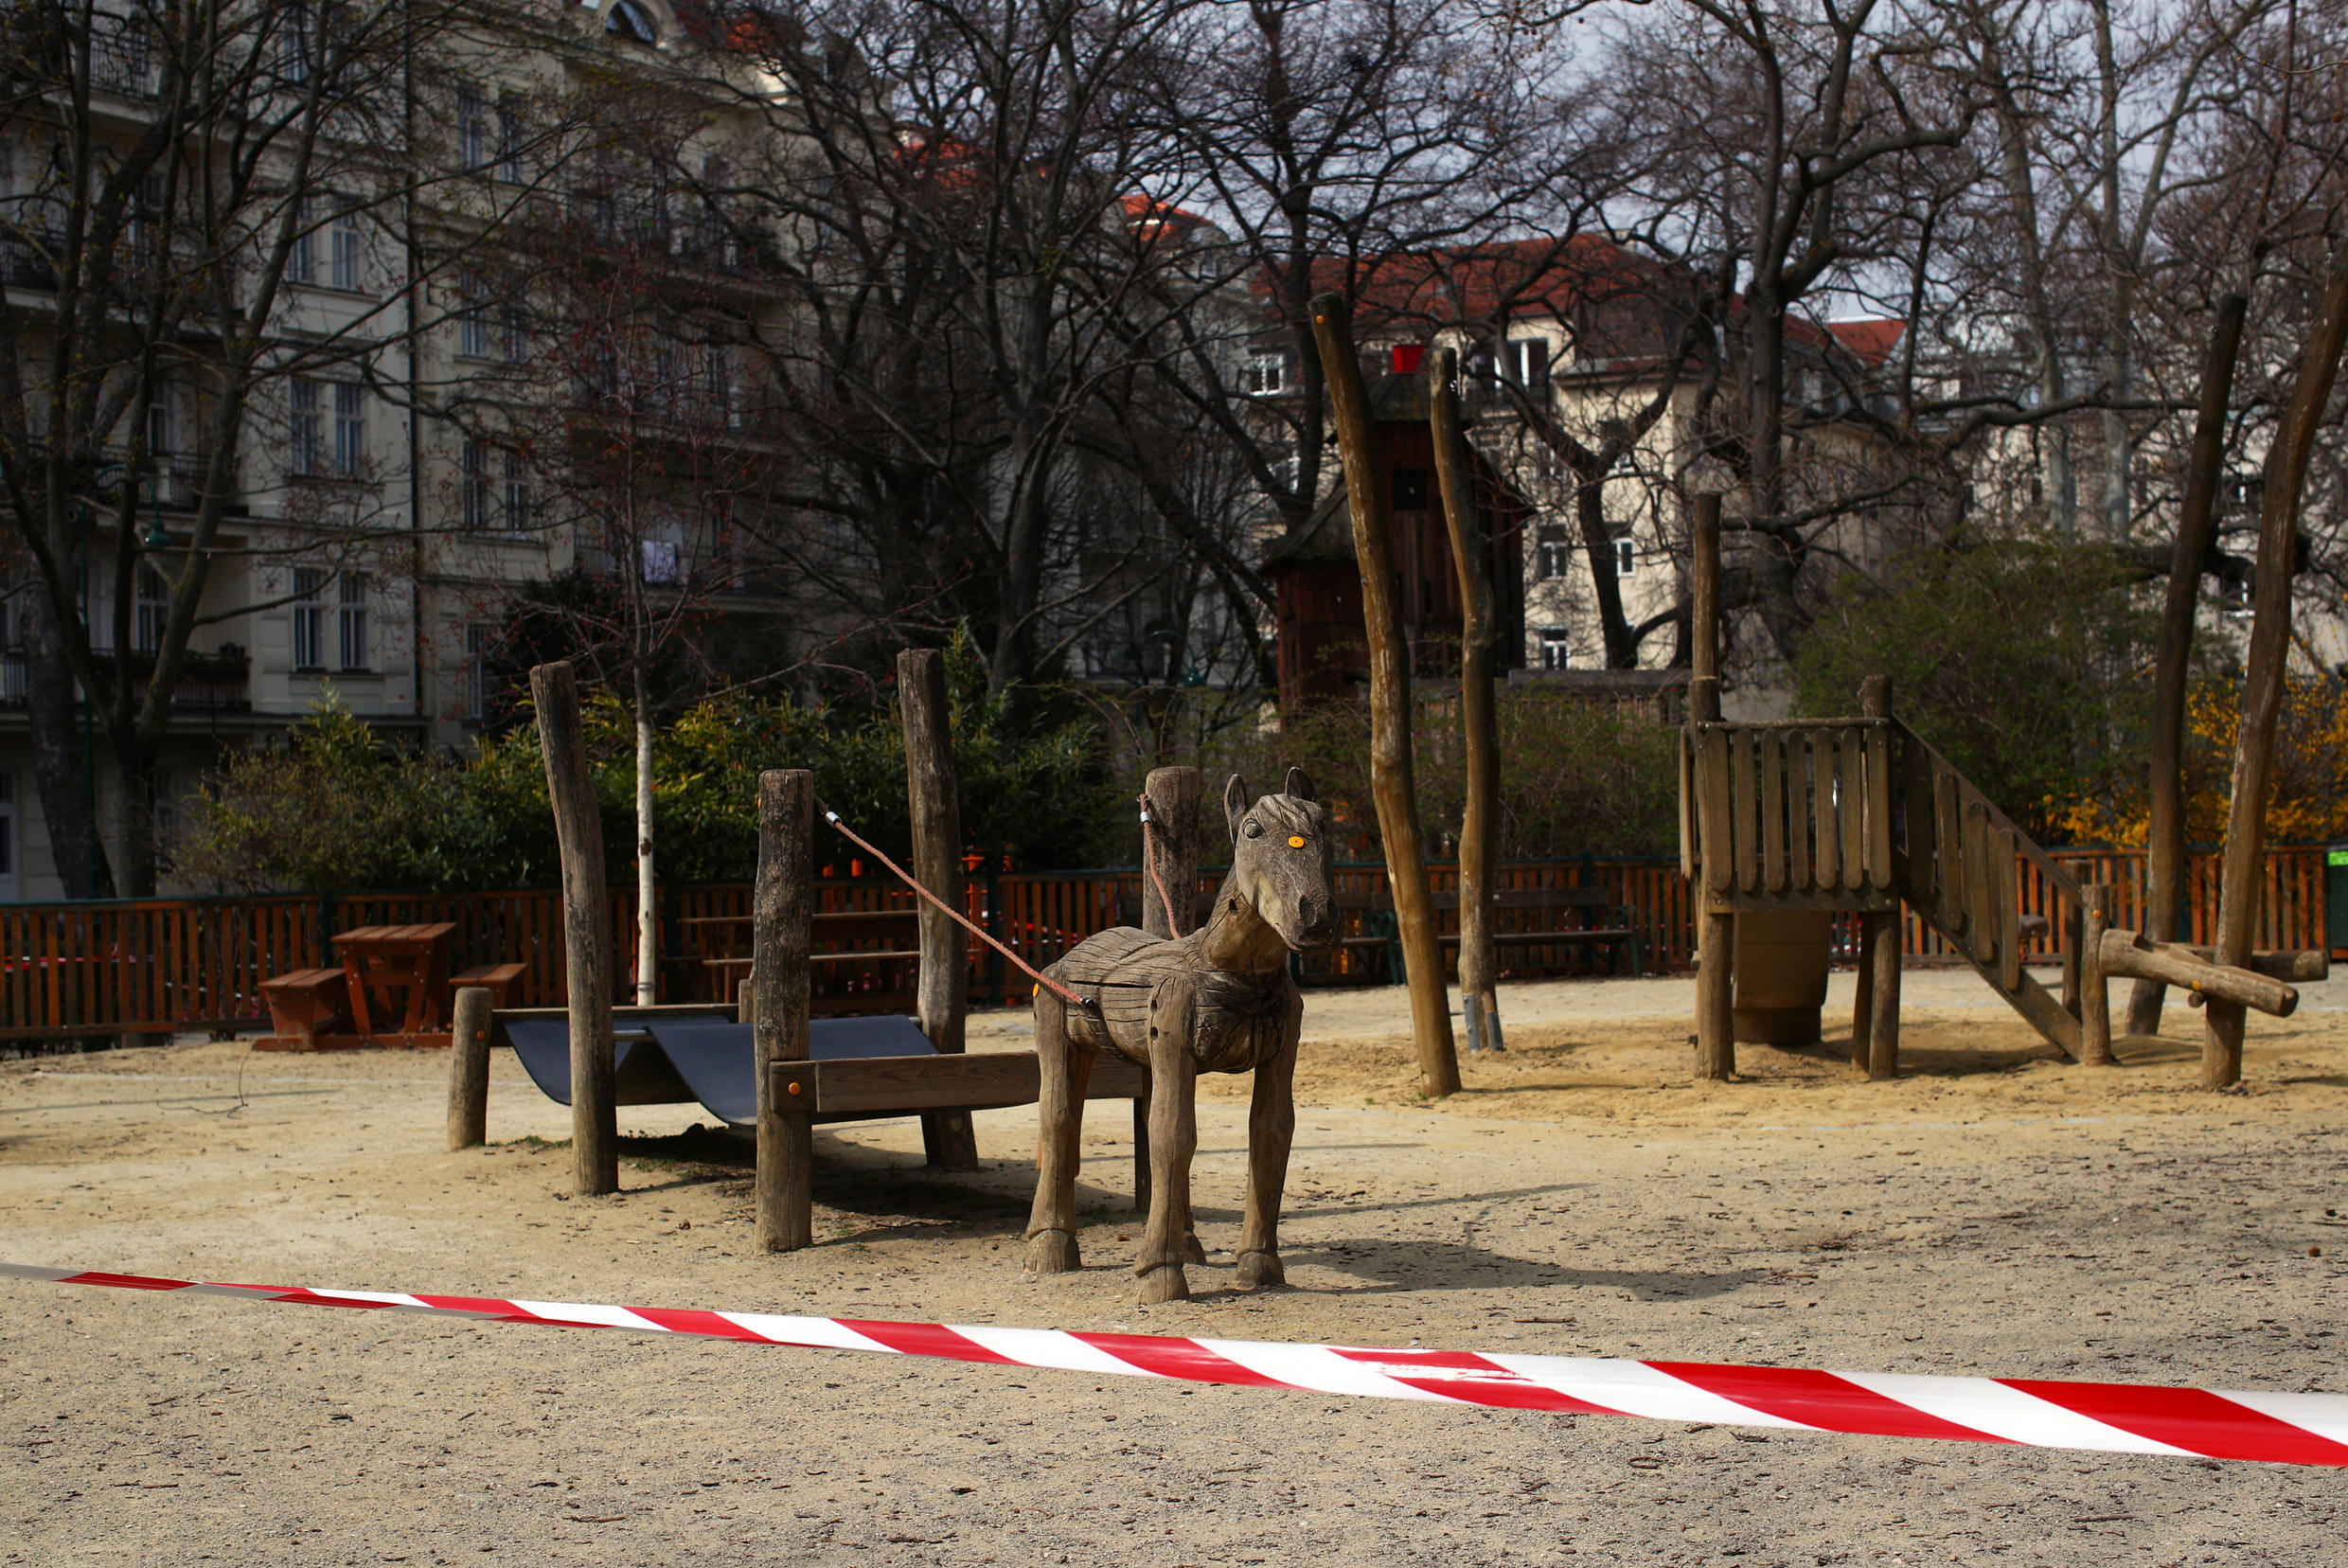 An empty playground in Vienna, Austria, where officials have announced plans to open some public parks starting next week.